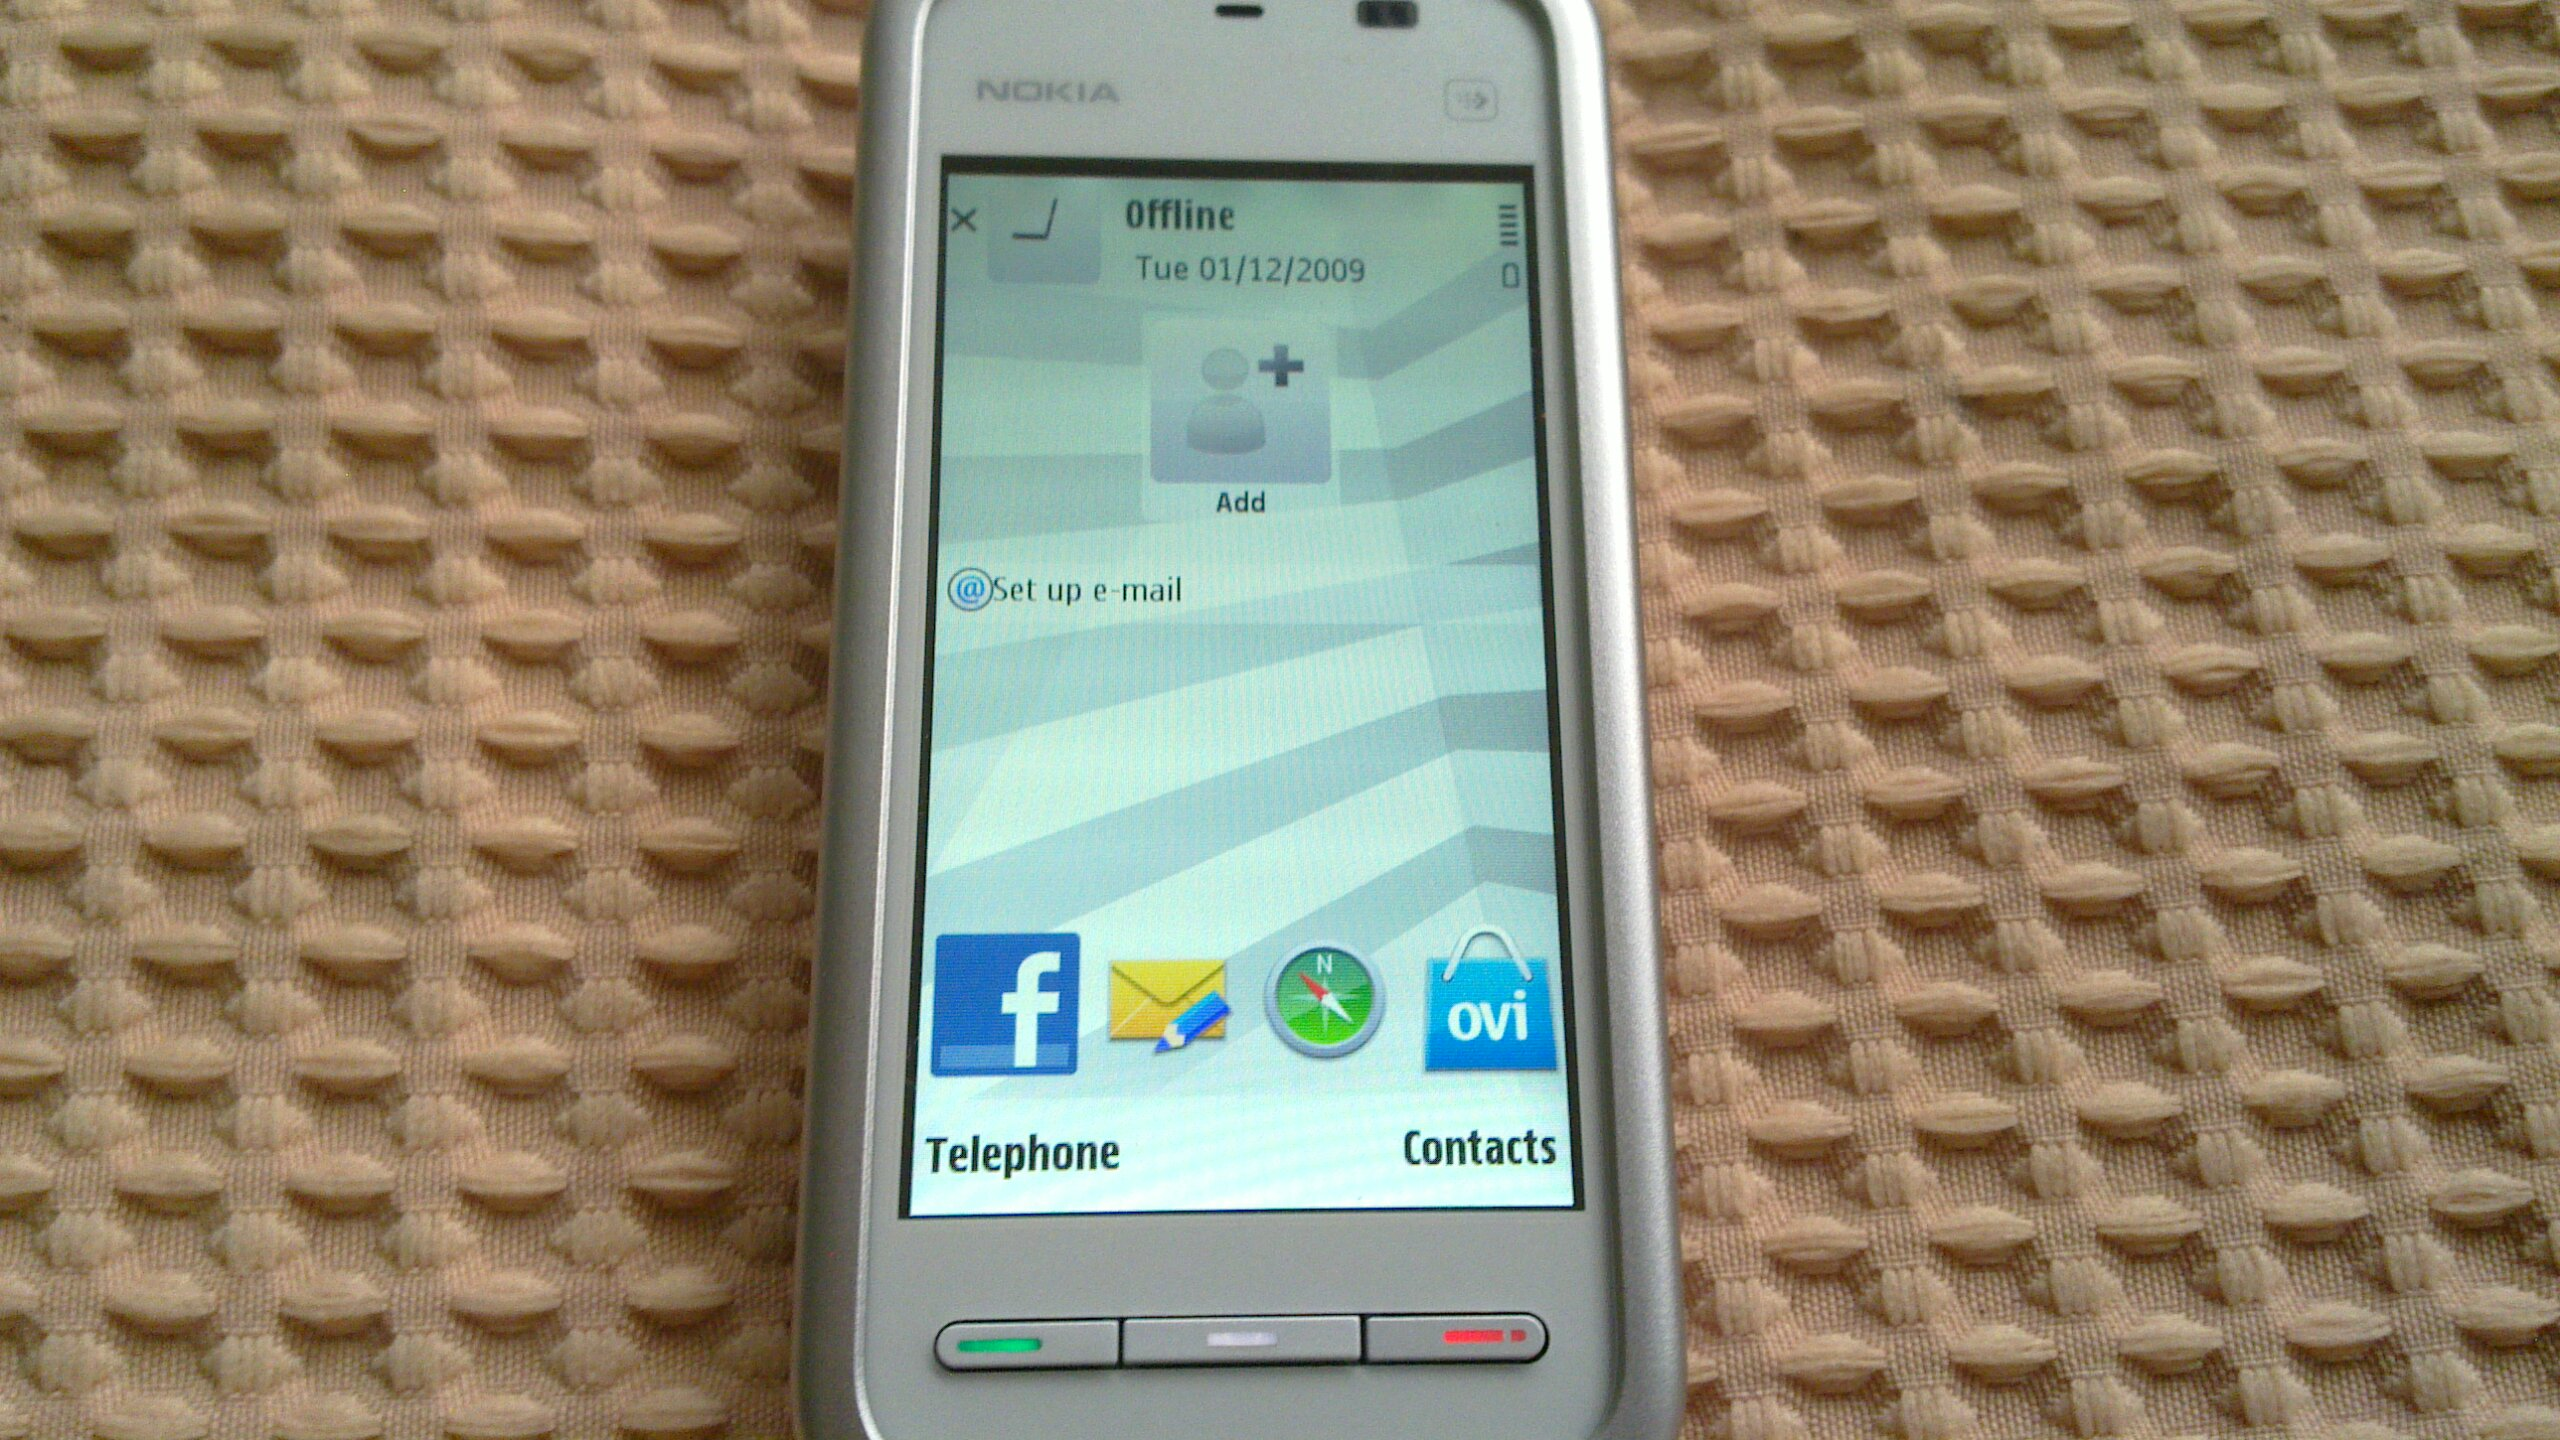 Nokia x7 00 software - The Mighty And Affordable Nokia